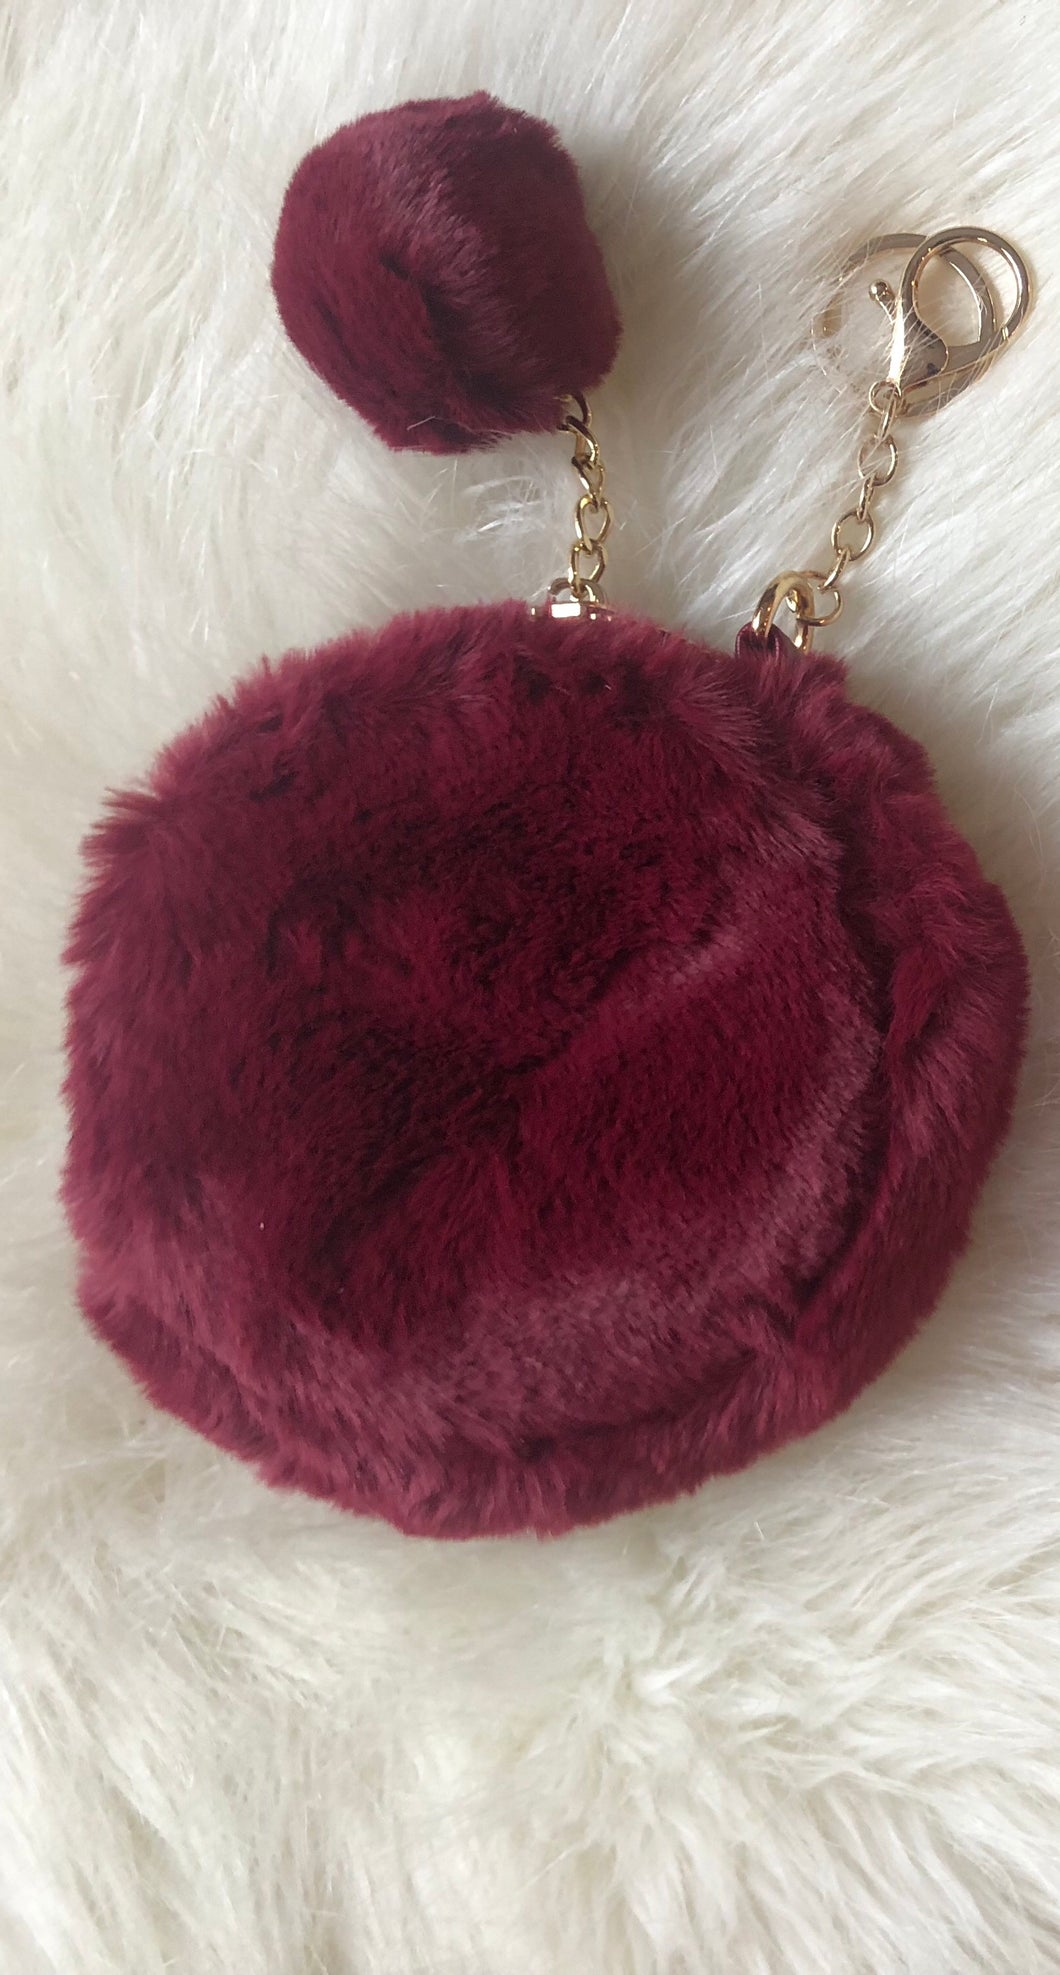 Faux Fur Change Purse (Burgundy)